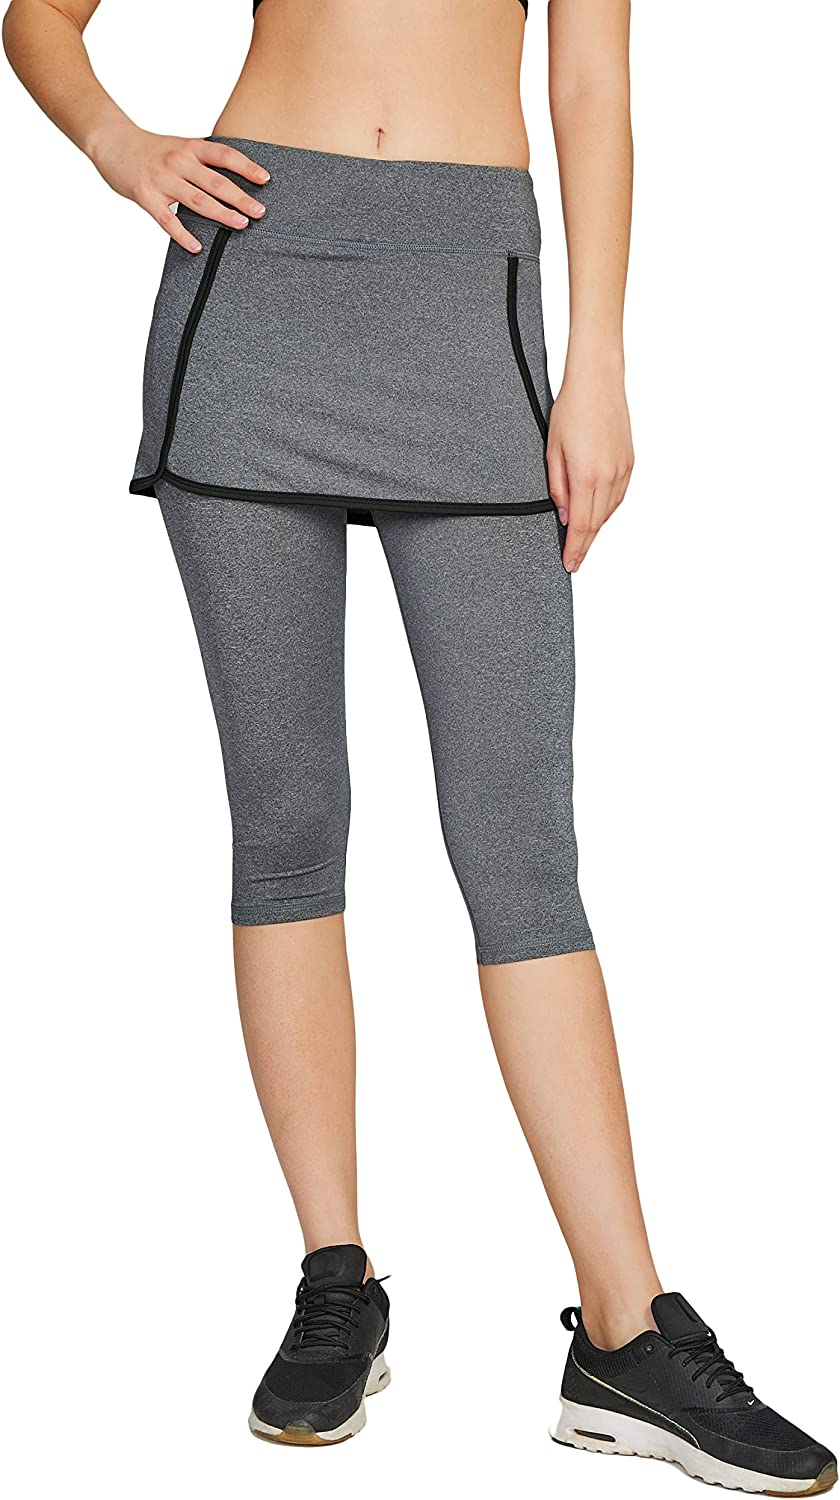 Cityoung Women's Athletic Capris Tennis Skirt with Leggings